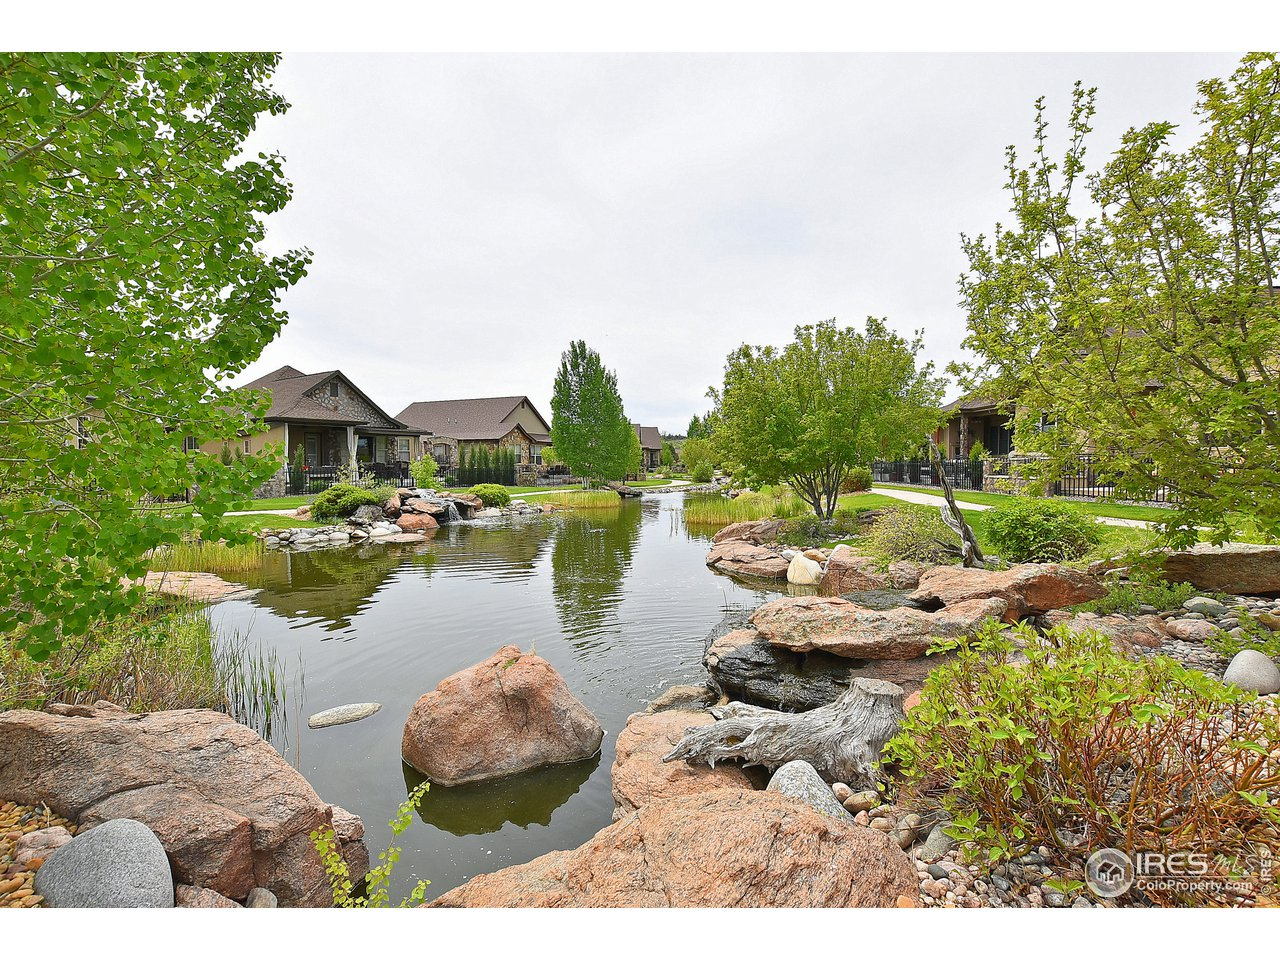 Home backs to private pond and waterfall.